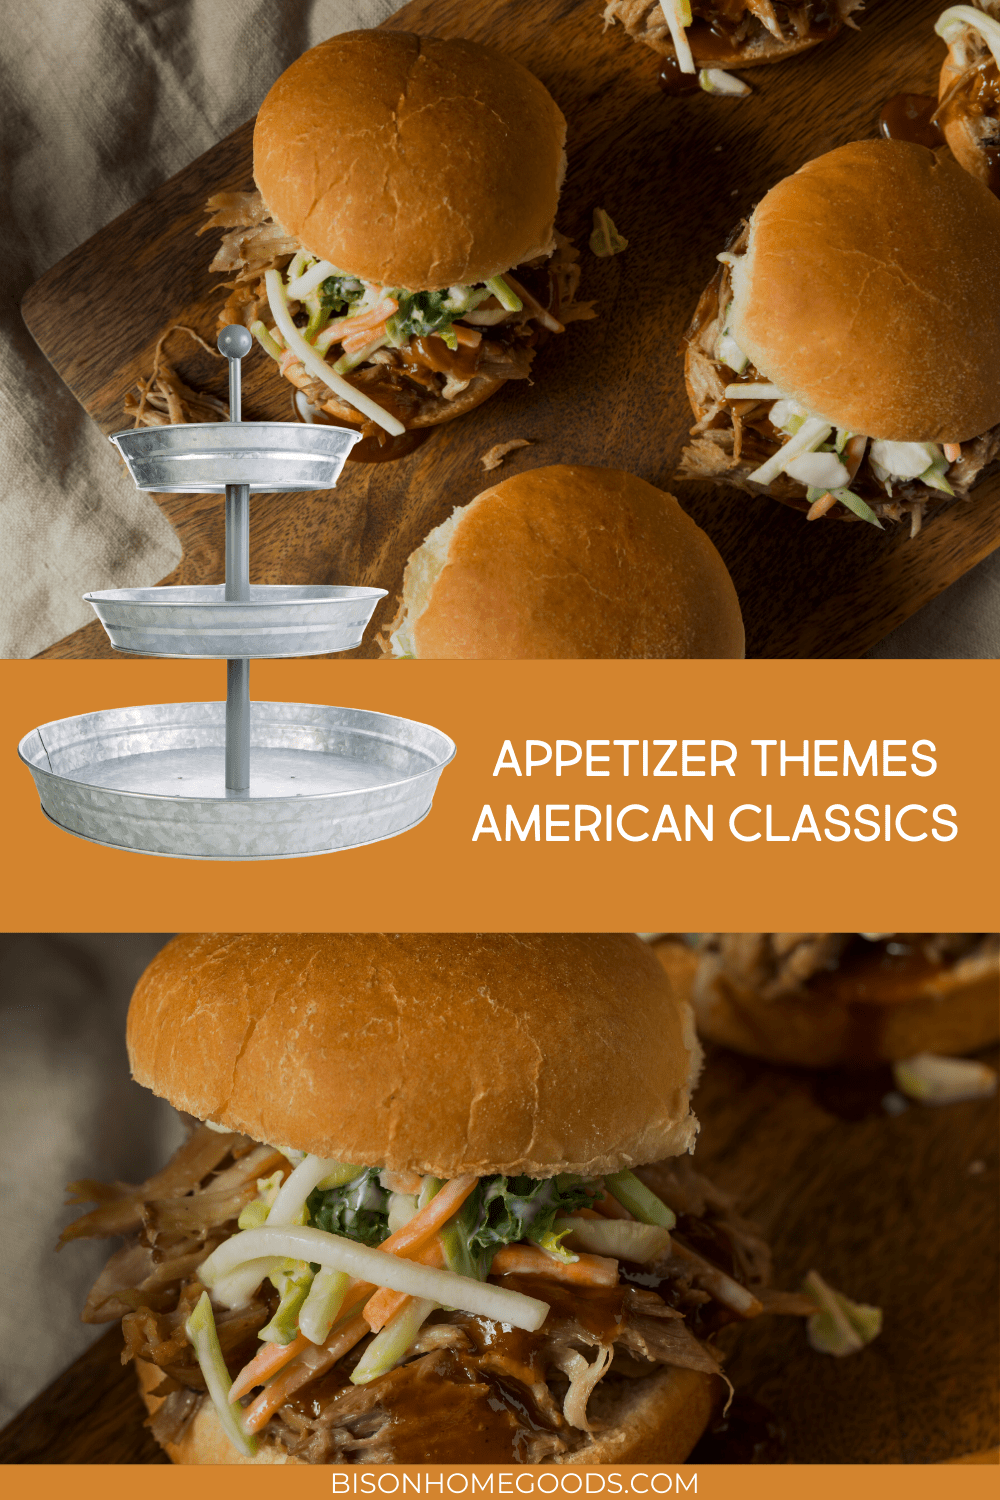 4 Appetizer Themes for Your Galvanized 3-Tier Tray - American Classics